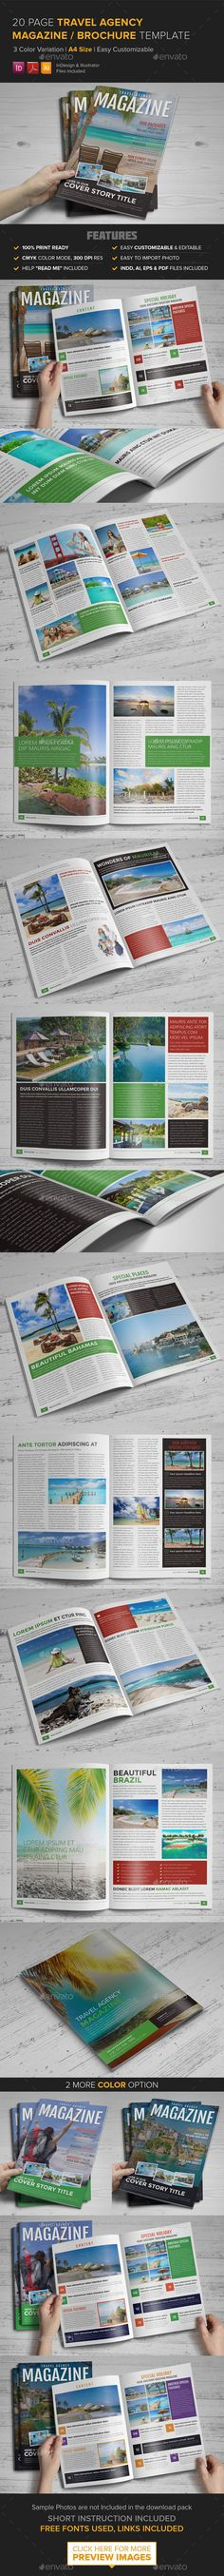 Travel Agency Magazine Brochure Template - InDesig — Vector EPS #modern magazine #travel company brochure • Available here → https://graphicriver.net/item/travel-agency-magazine-brochure-template-indesig/9227979?ref=pxcr